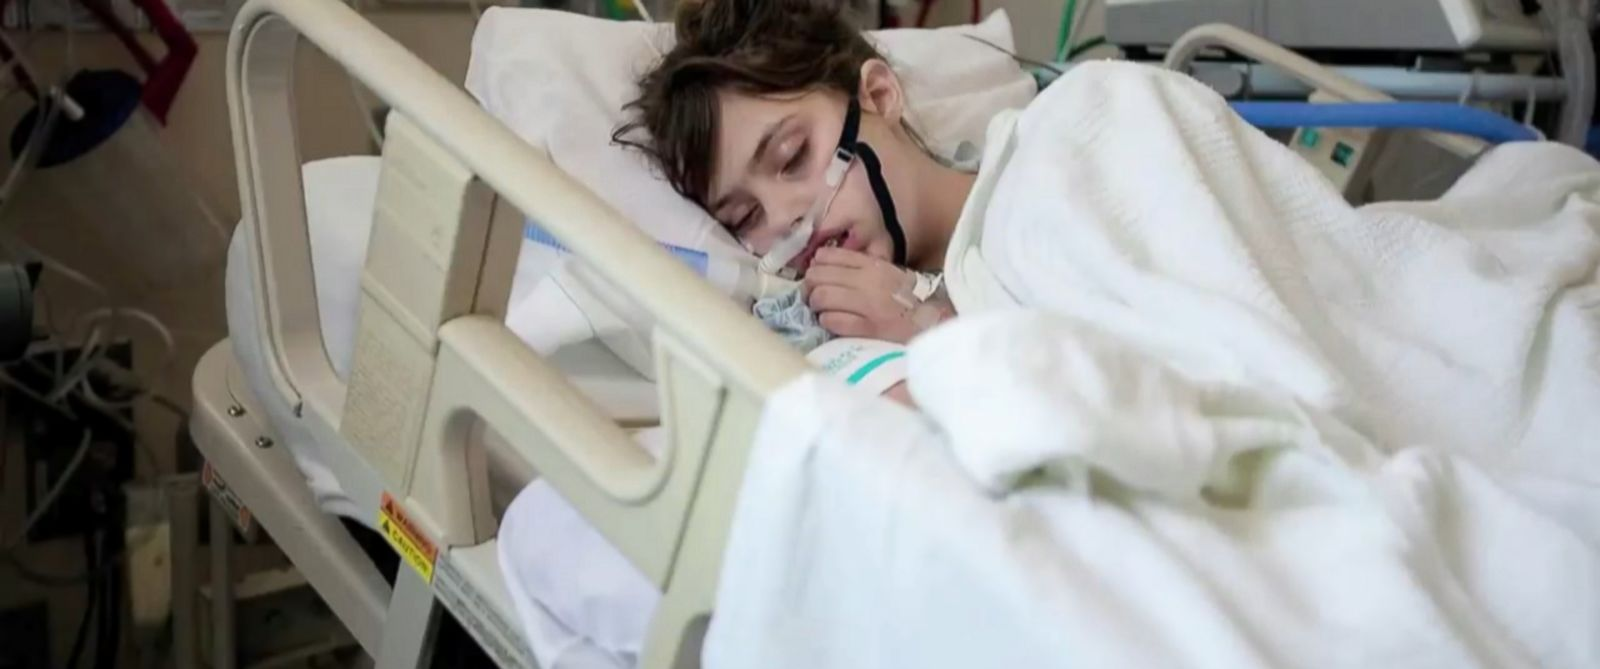 PHOTO: Claire Wineland was a coma for two weeks after undergoing surgery to help treat her cystic fibrosis.